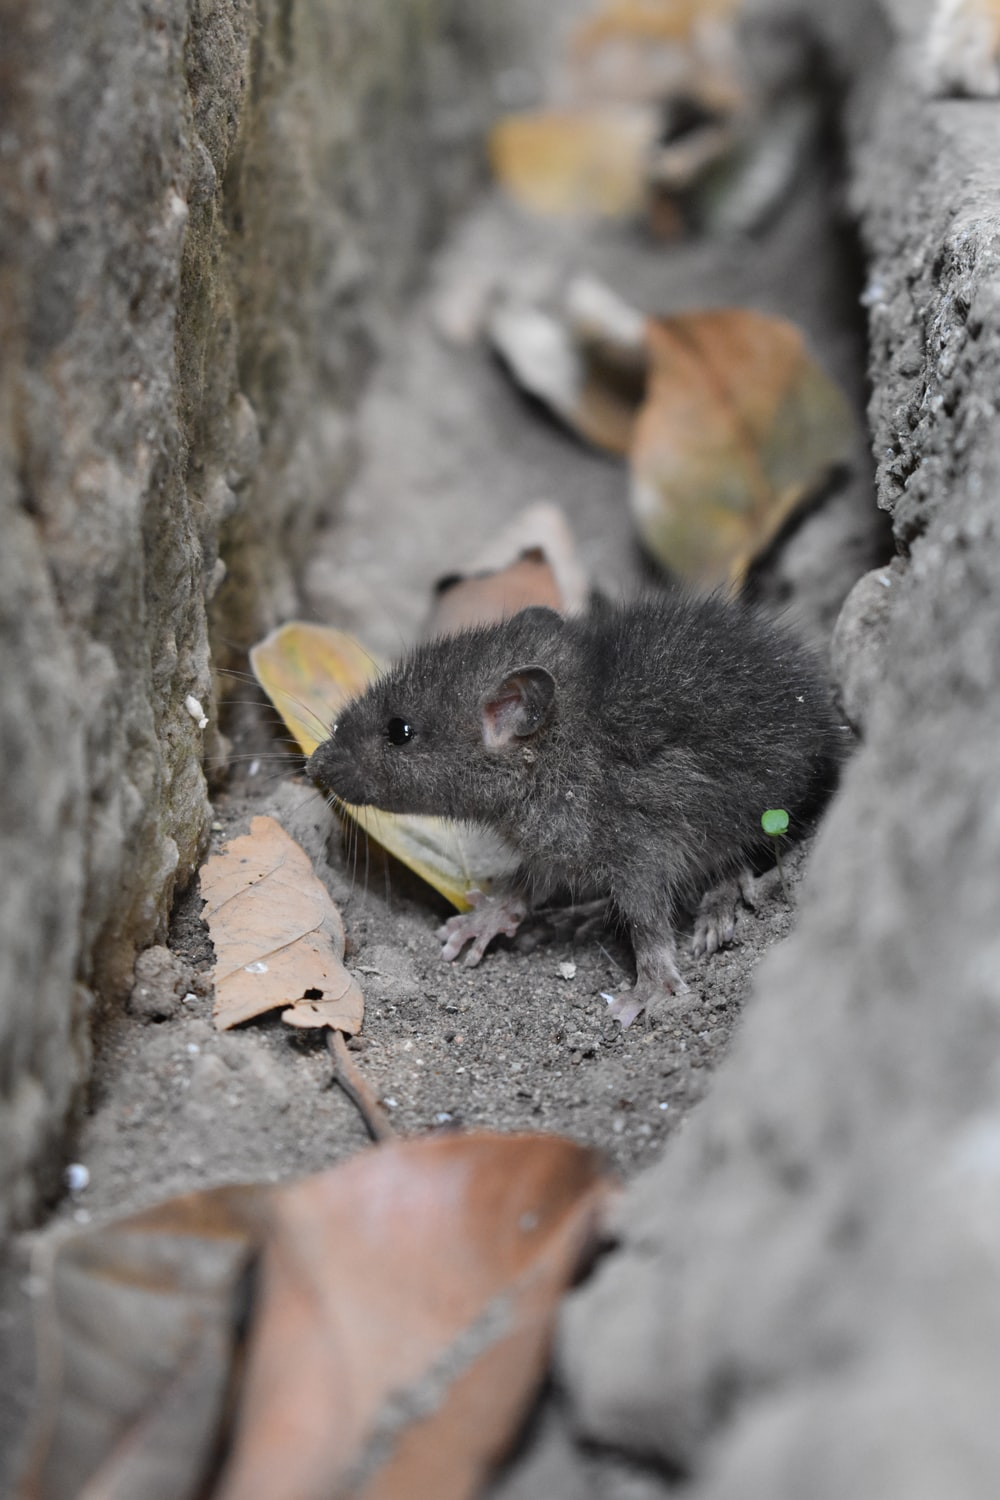 black mouse on gray concrete pavement